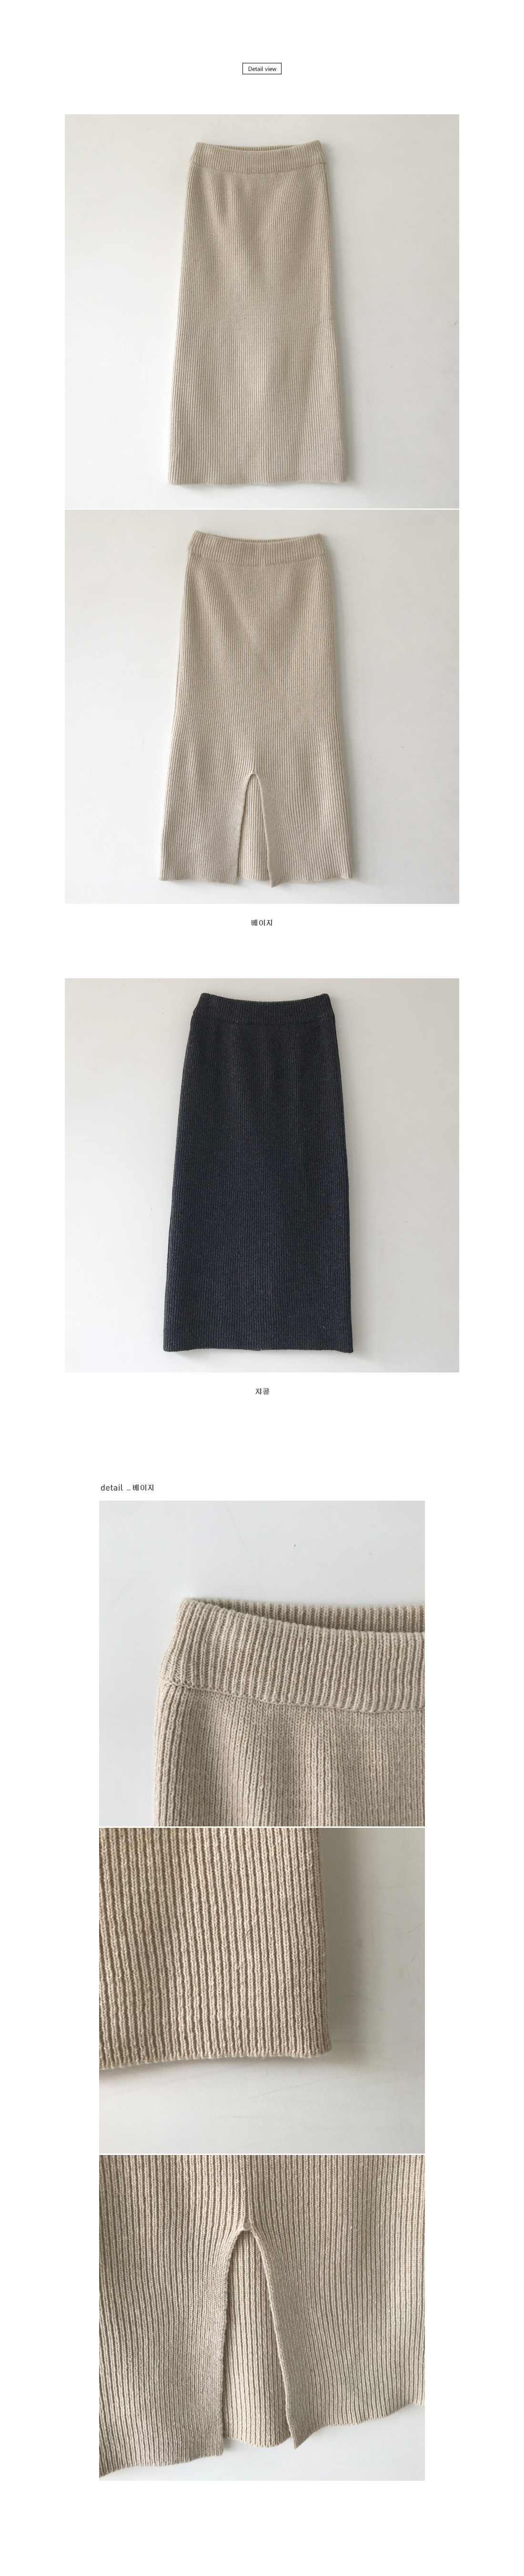 Knit long skirt